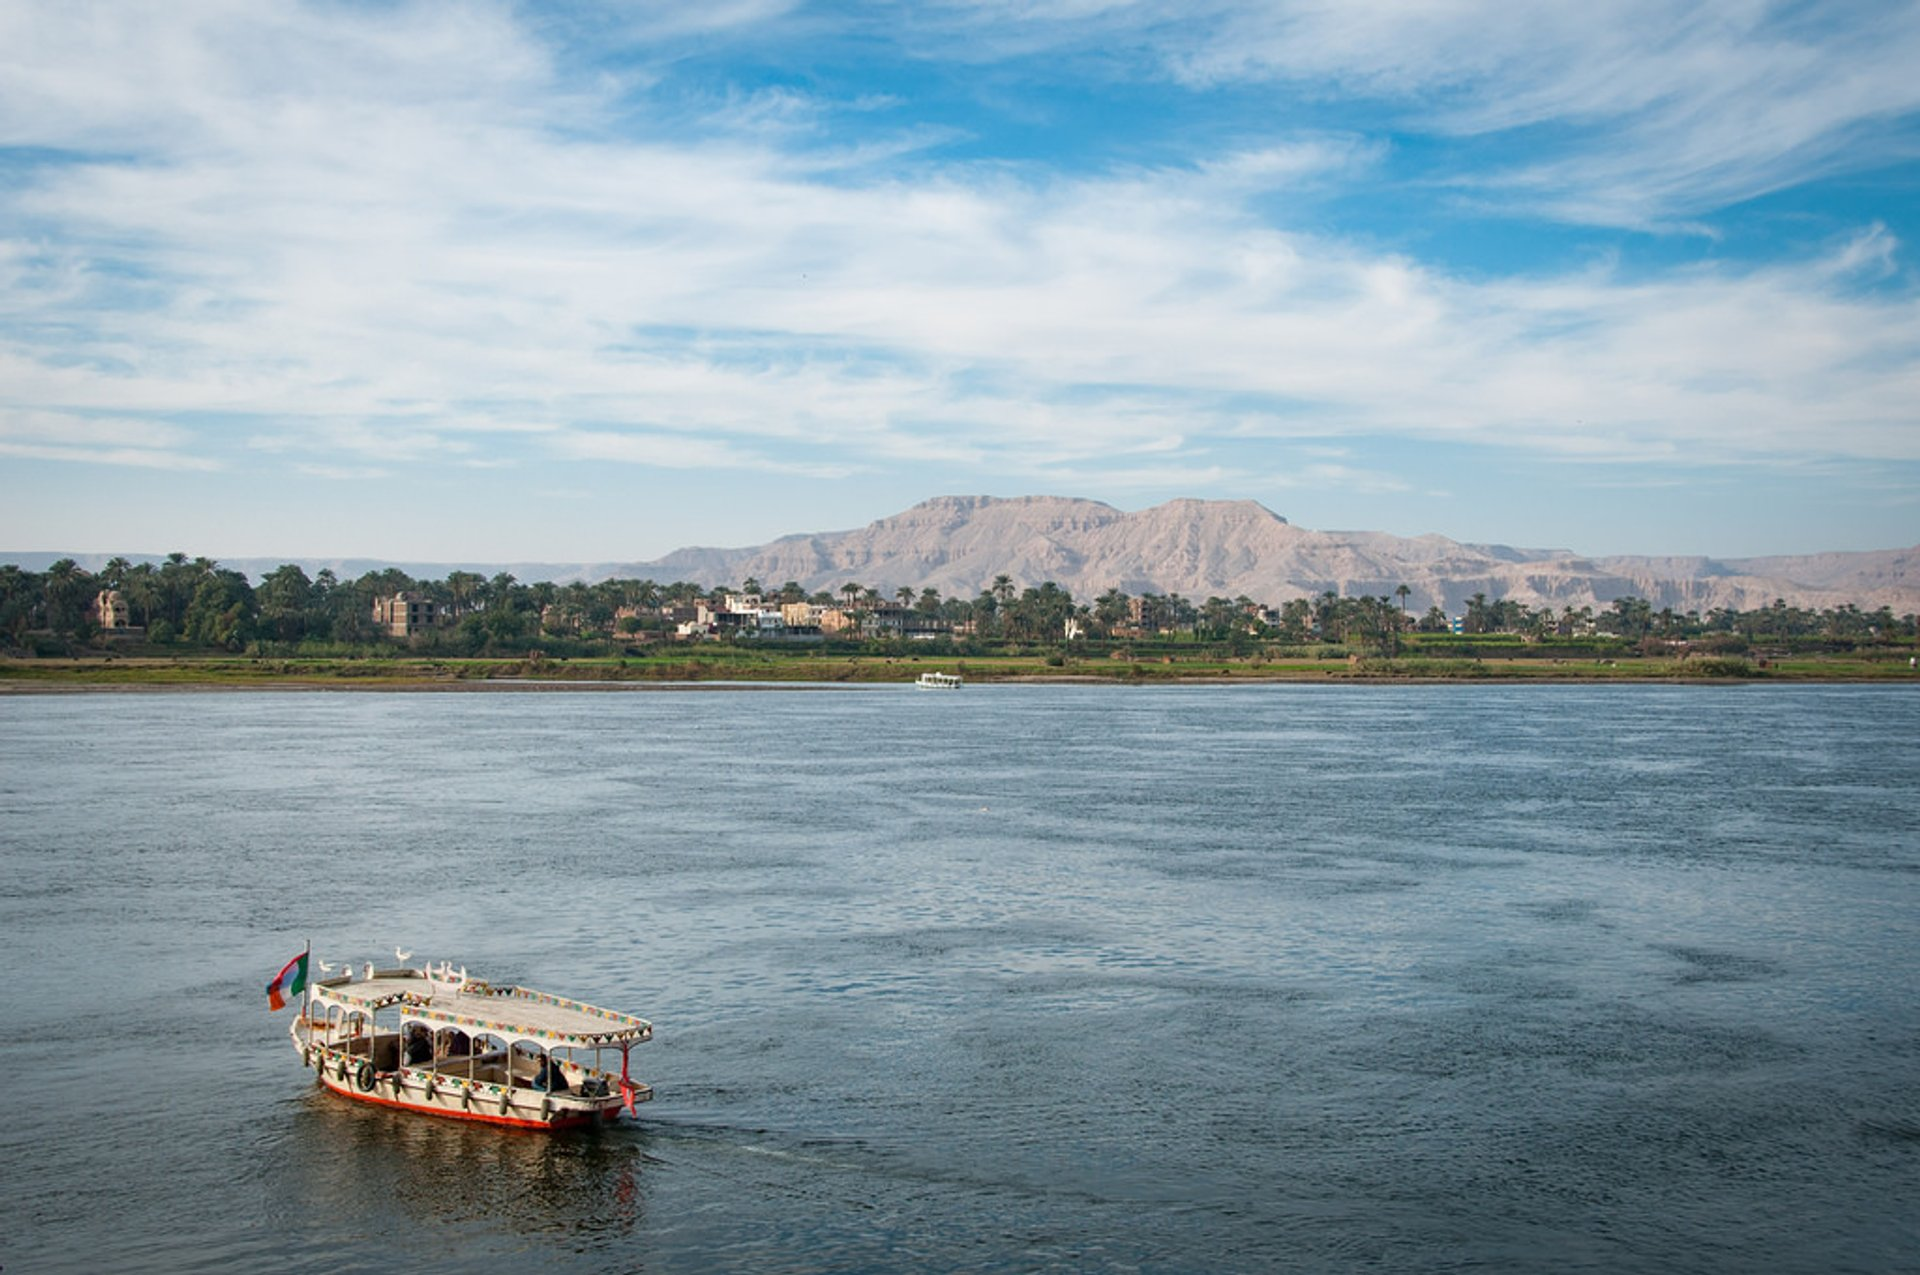 Nile River Cruise in Egypt - Best Time